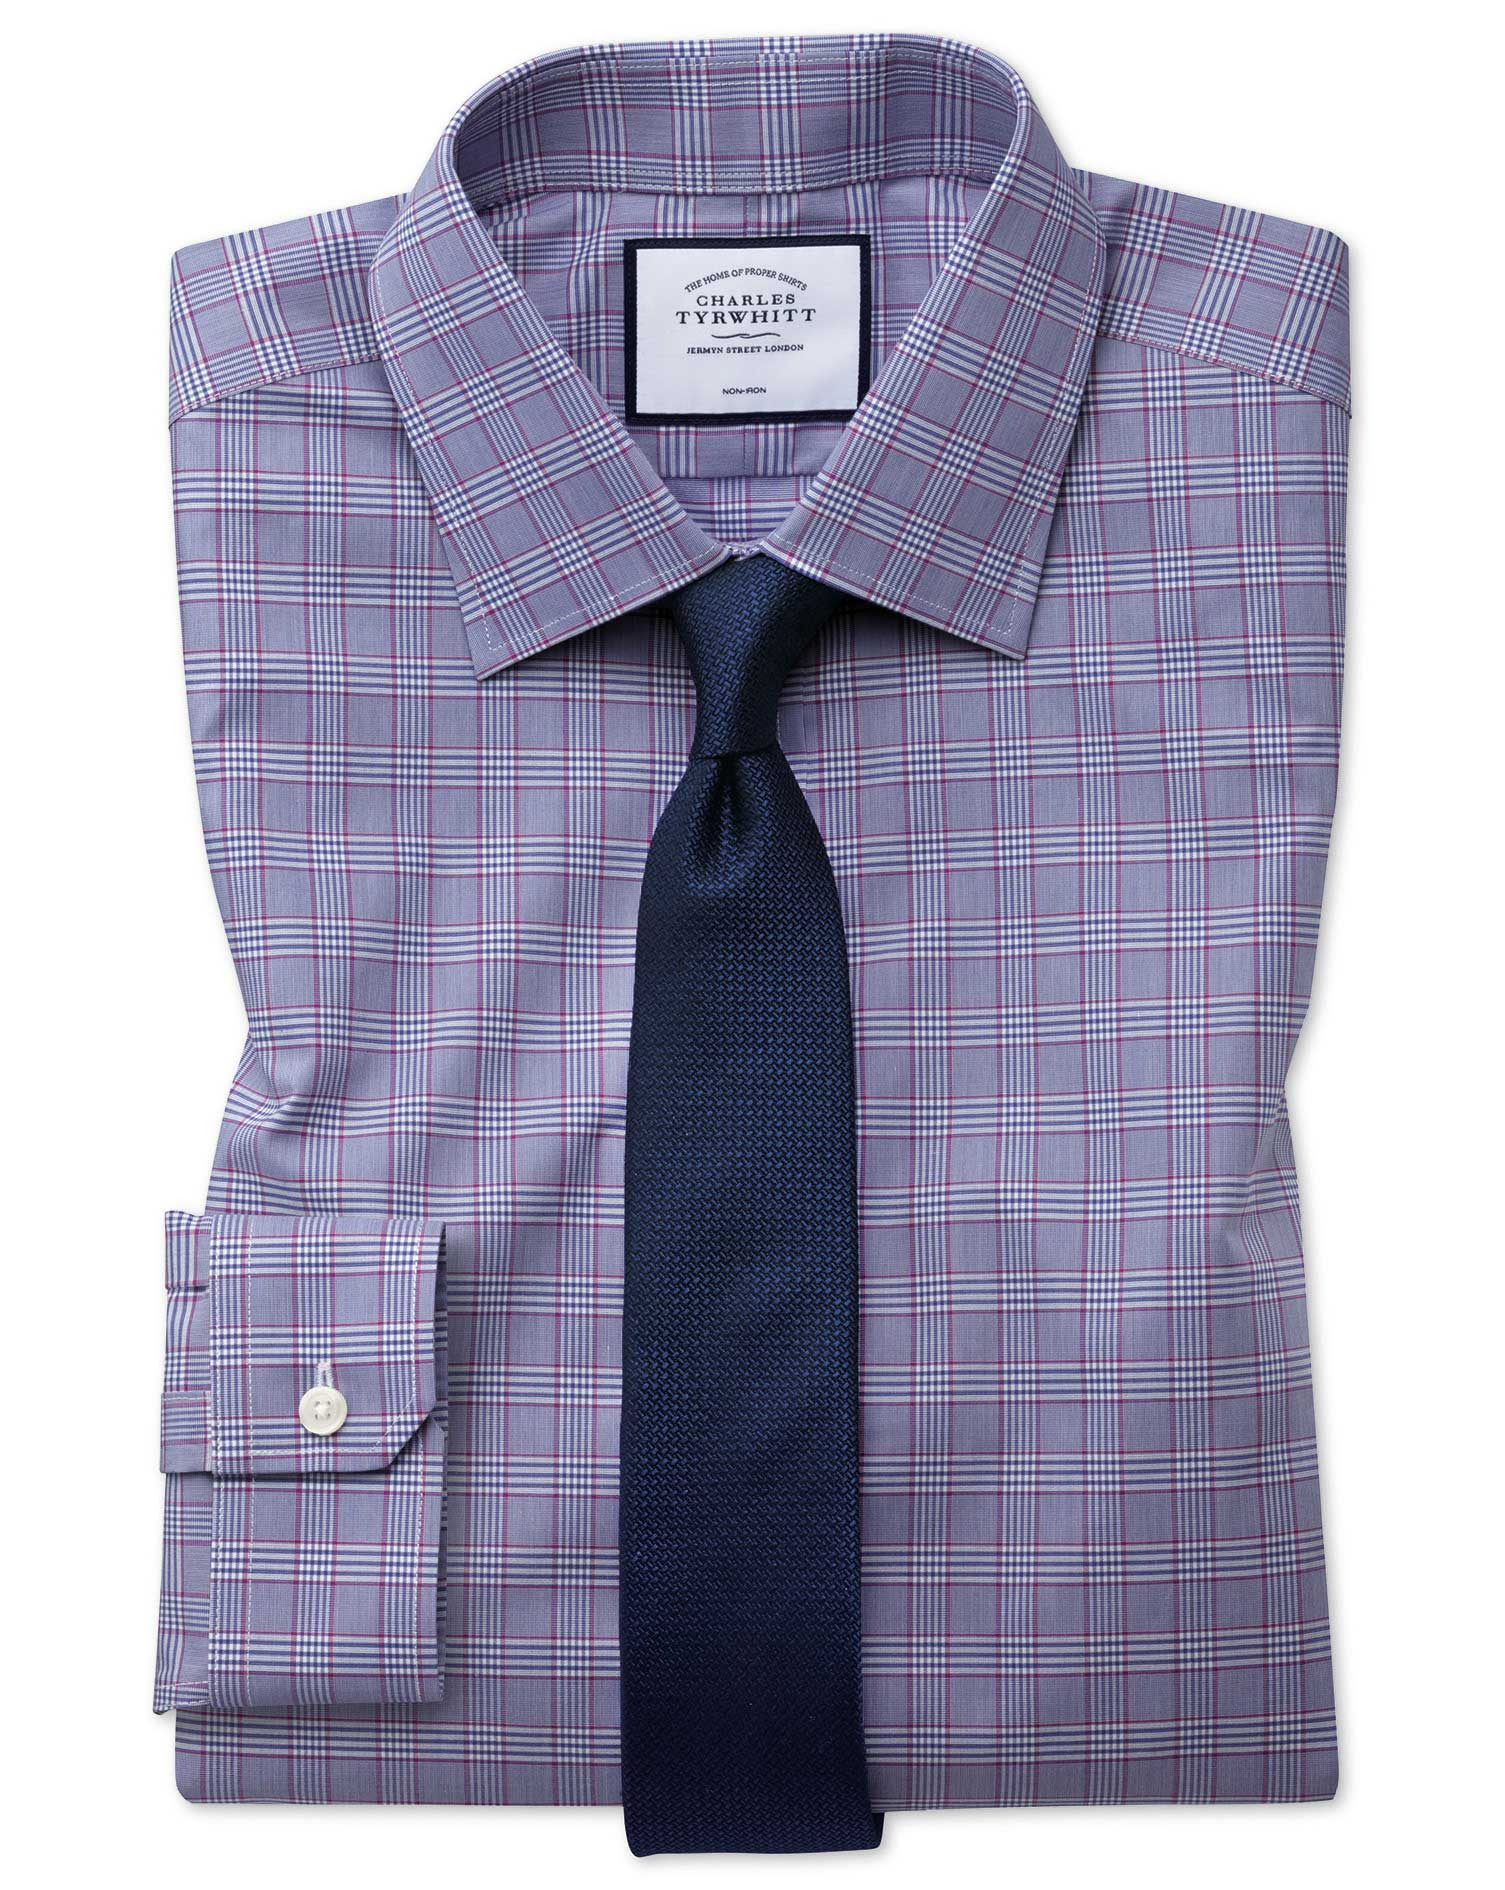 Super Slim Fit Non-Iron Berry and Navy Prince Of Wales Check Cotton Formal Shirt Double Cuff Size 16